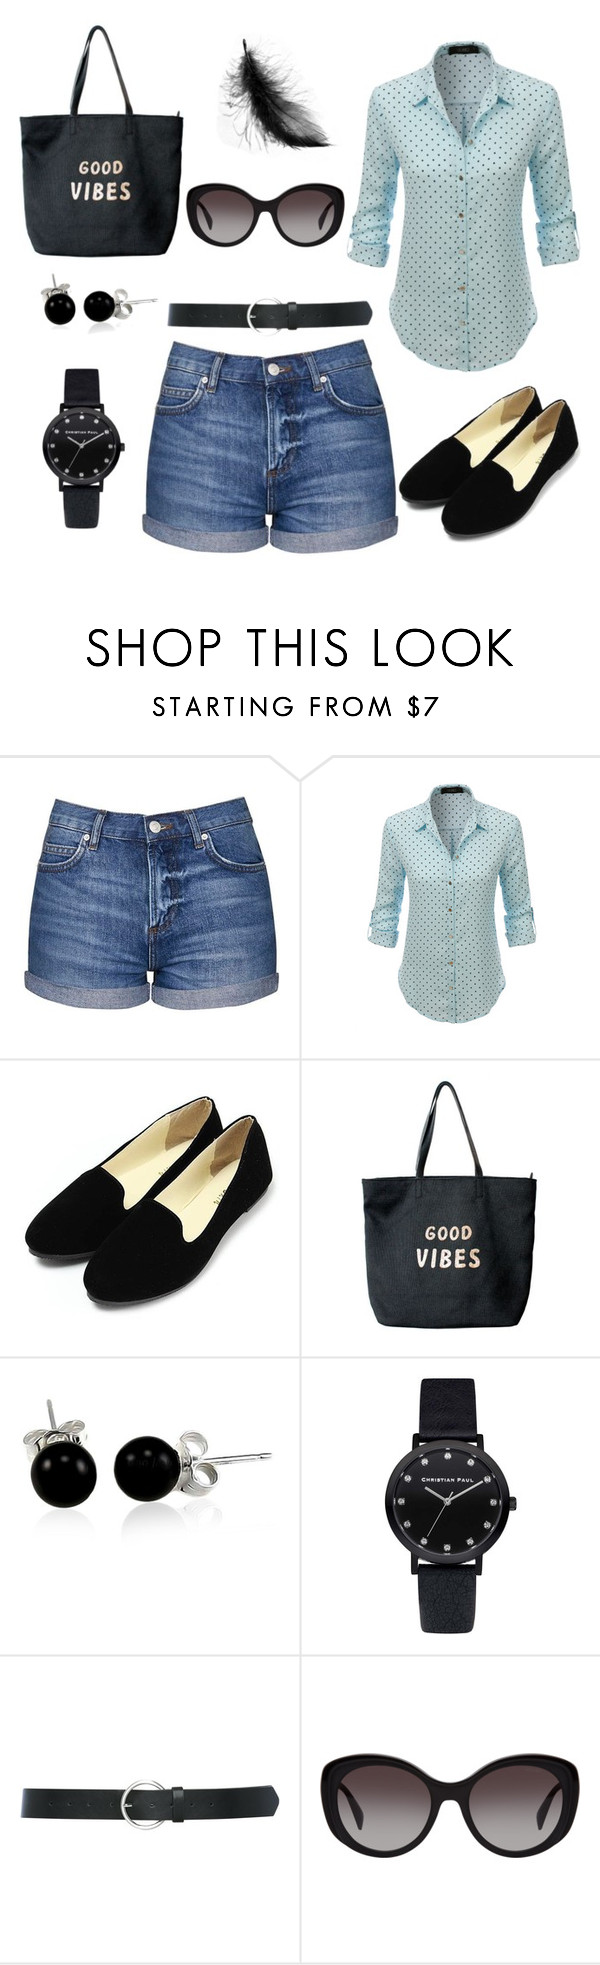 """""""Jeans shorts -classic personality styling"""" by monicazelin on Polyvore featuring Topshop, LE3NO, Venus, Bling Jewelry, M&Co and Prada"""